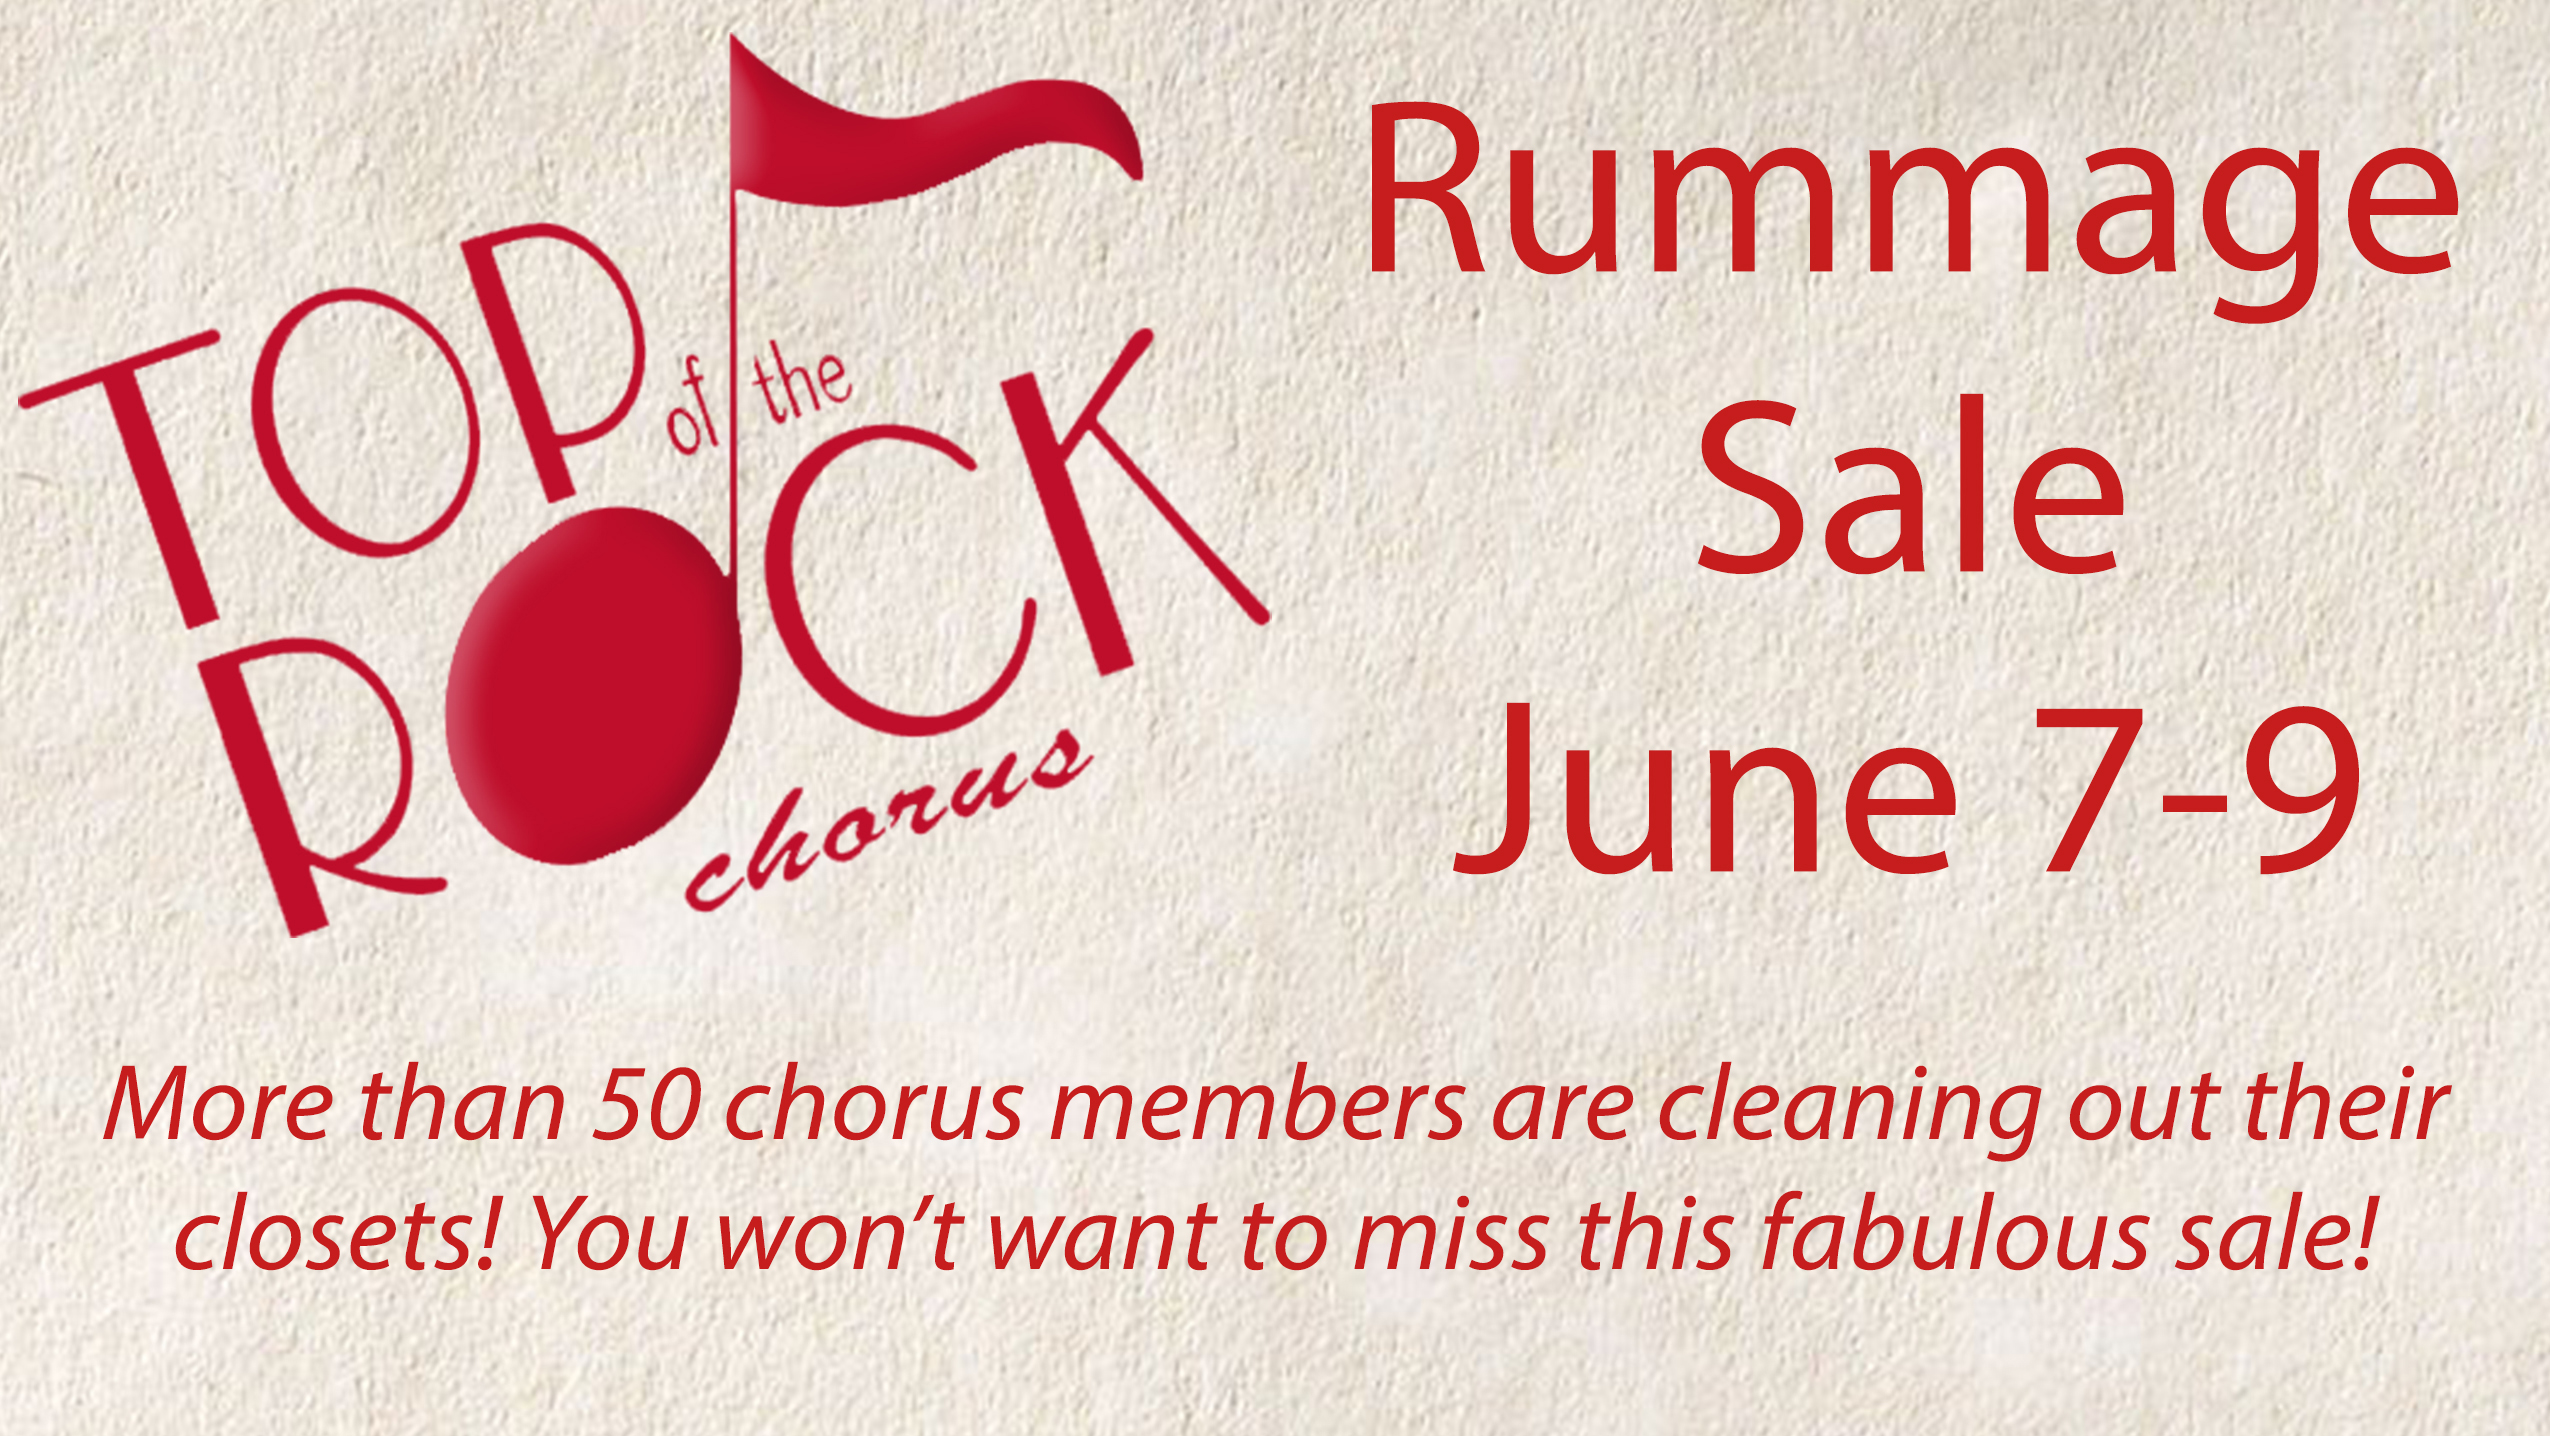 TOTR Rummage Sale June 7-9